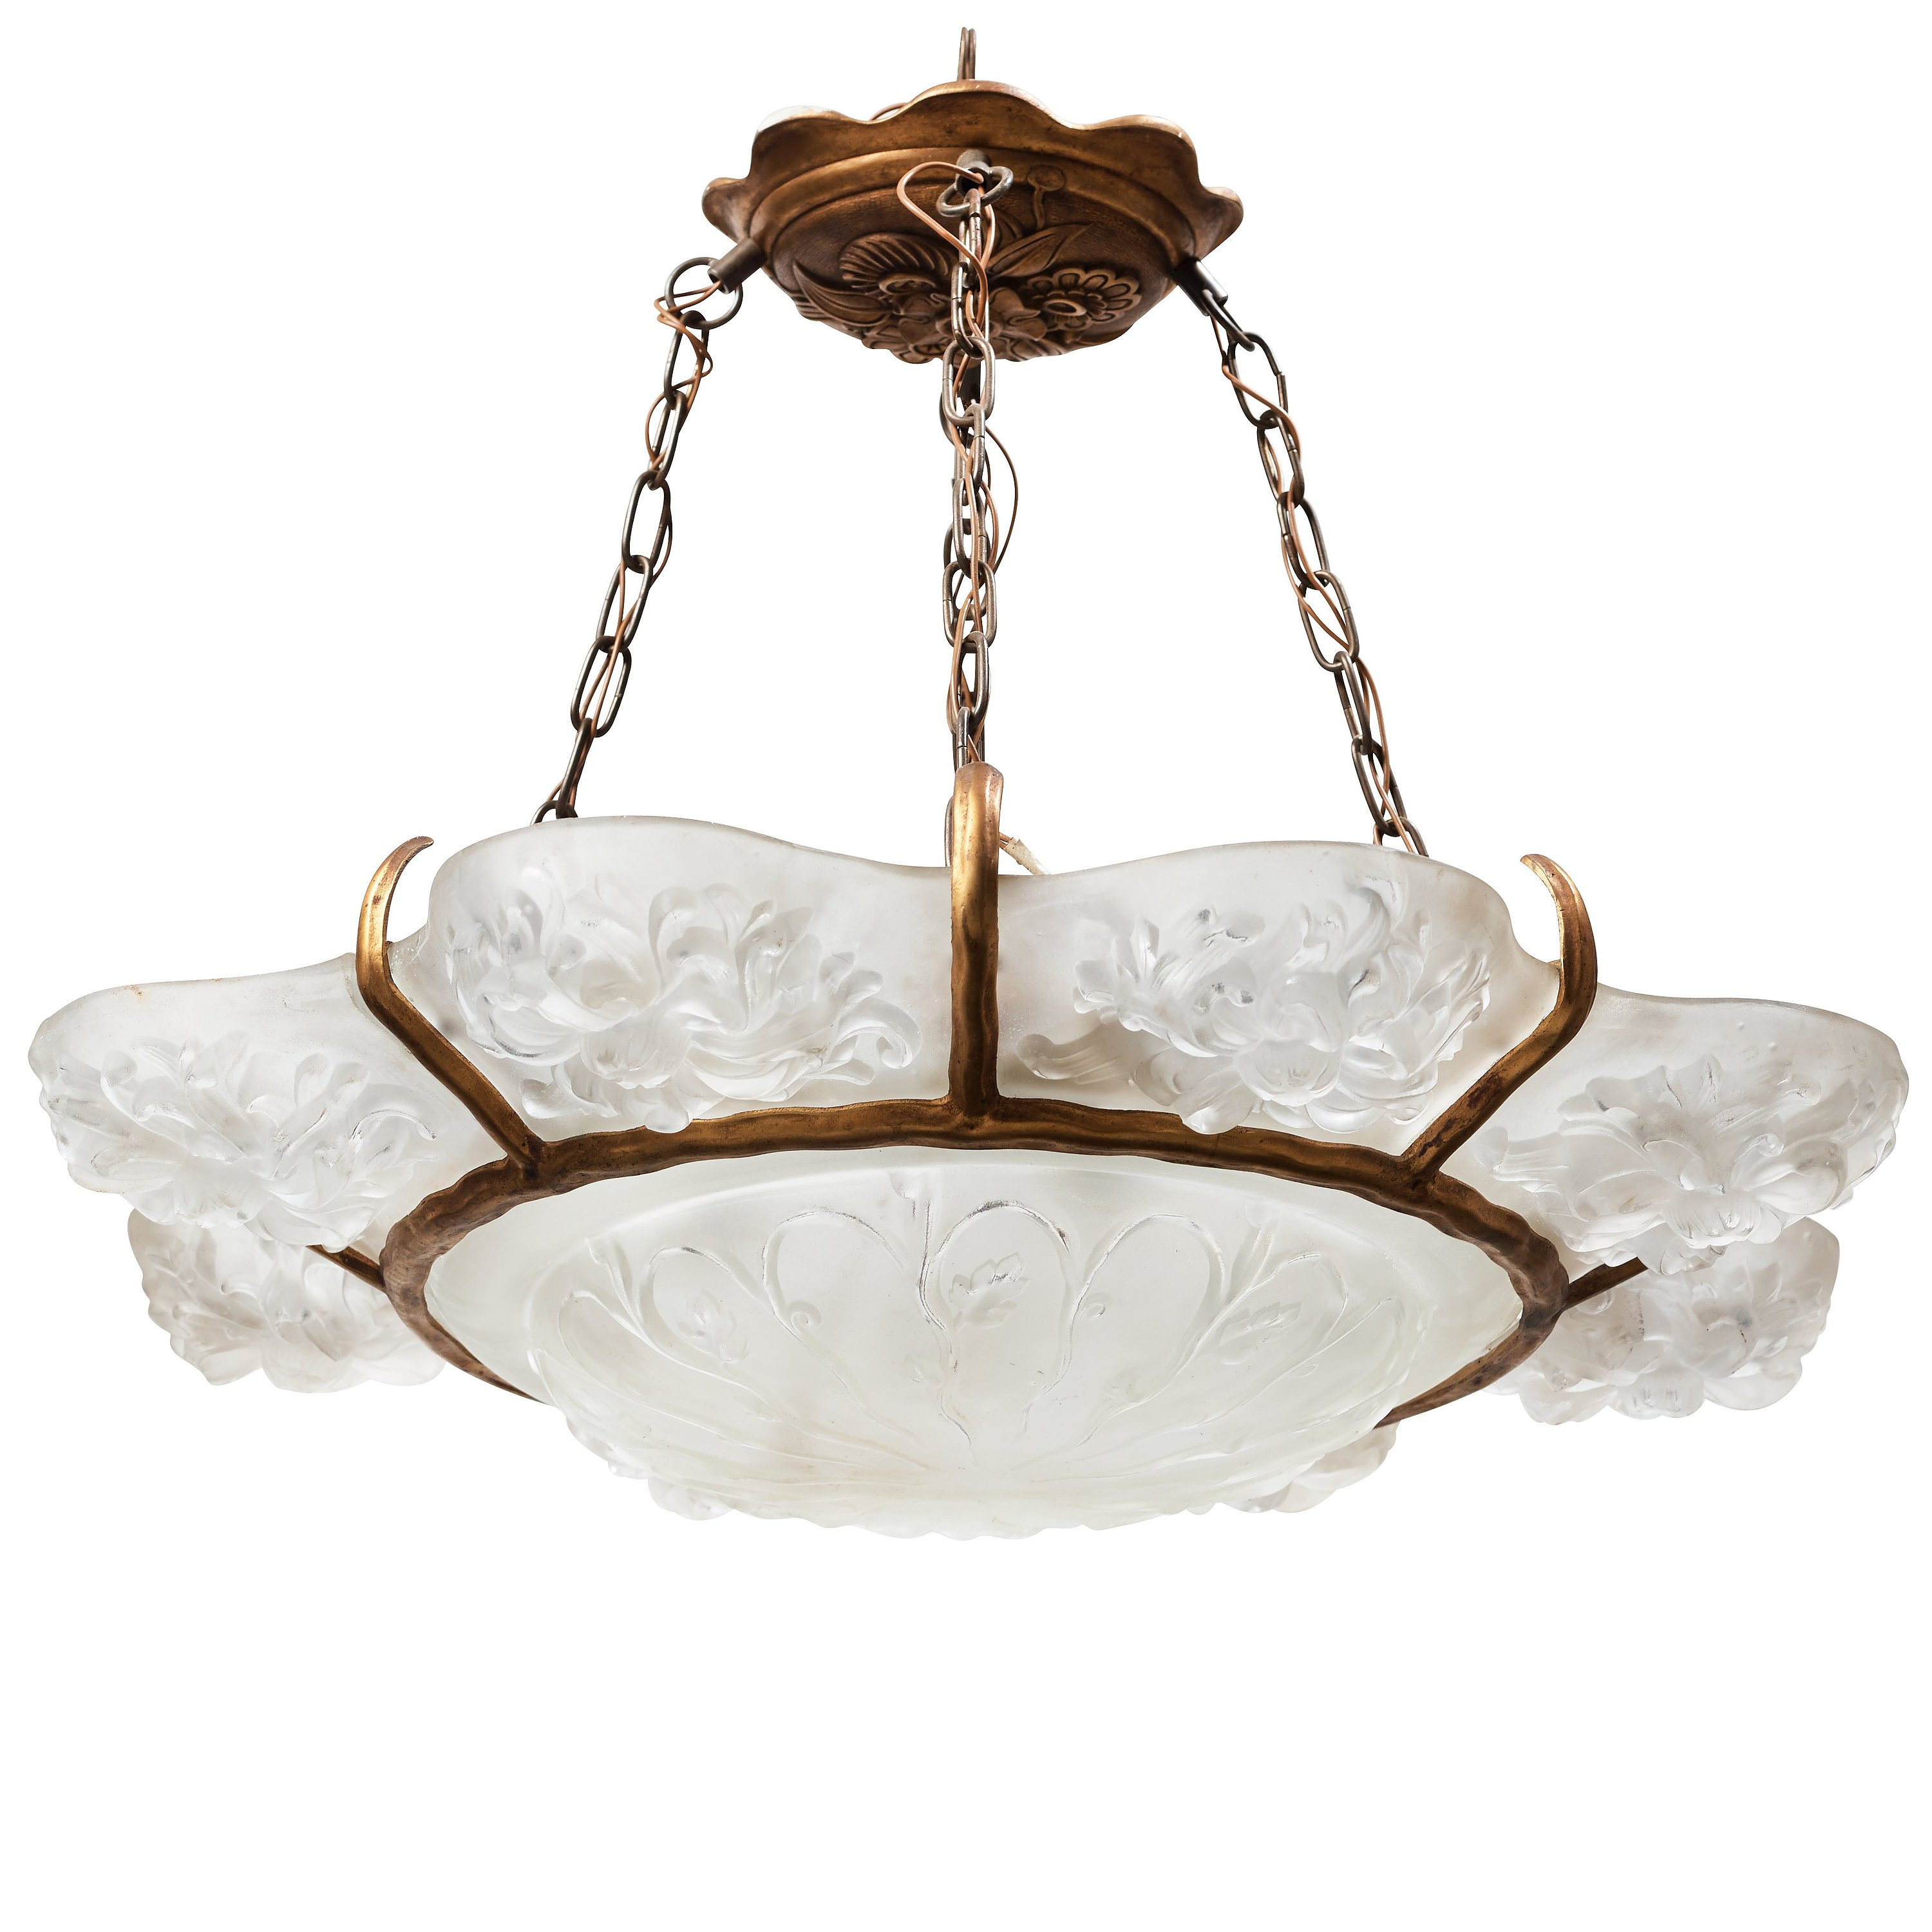 Sabino an art deco moulded glass and bronzed metal chandelier 9711263 bukobject arubaitofo Image collections